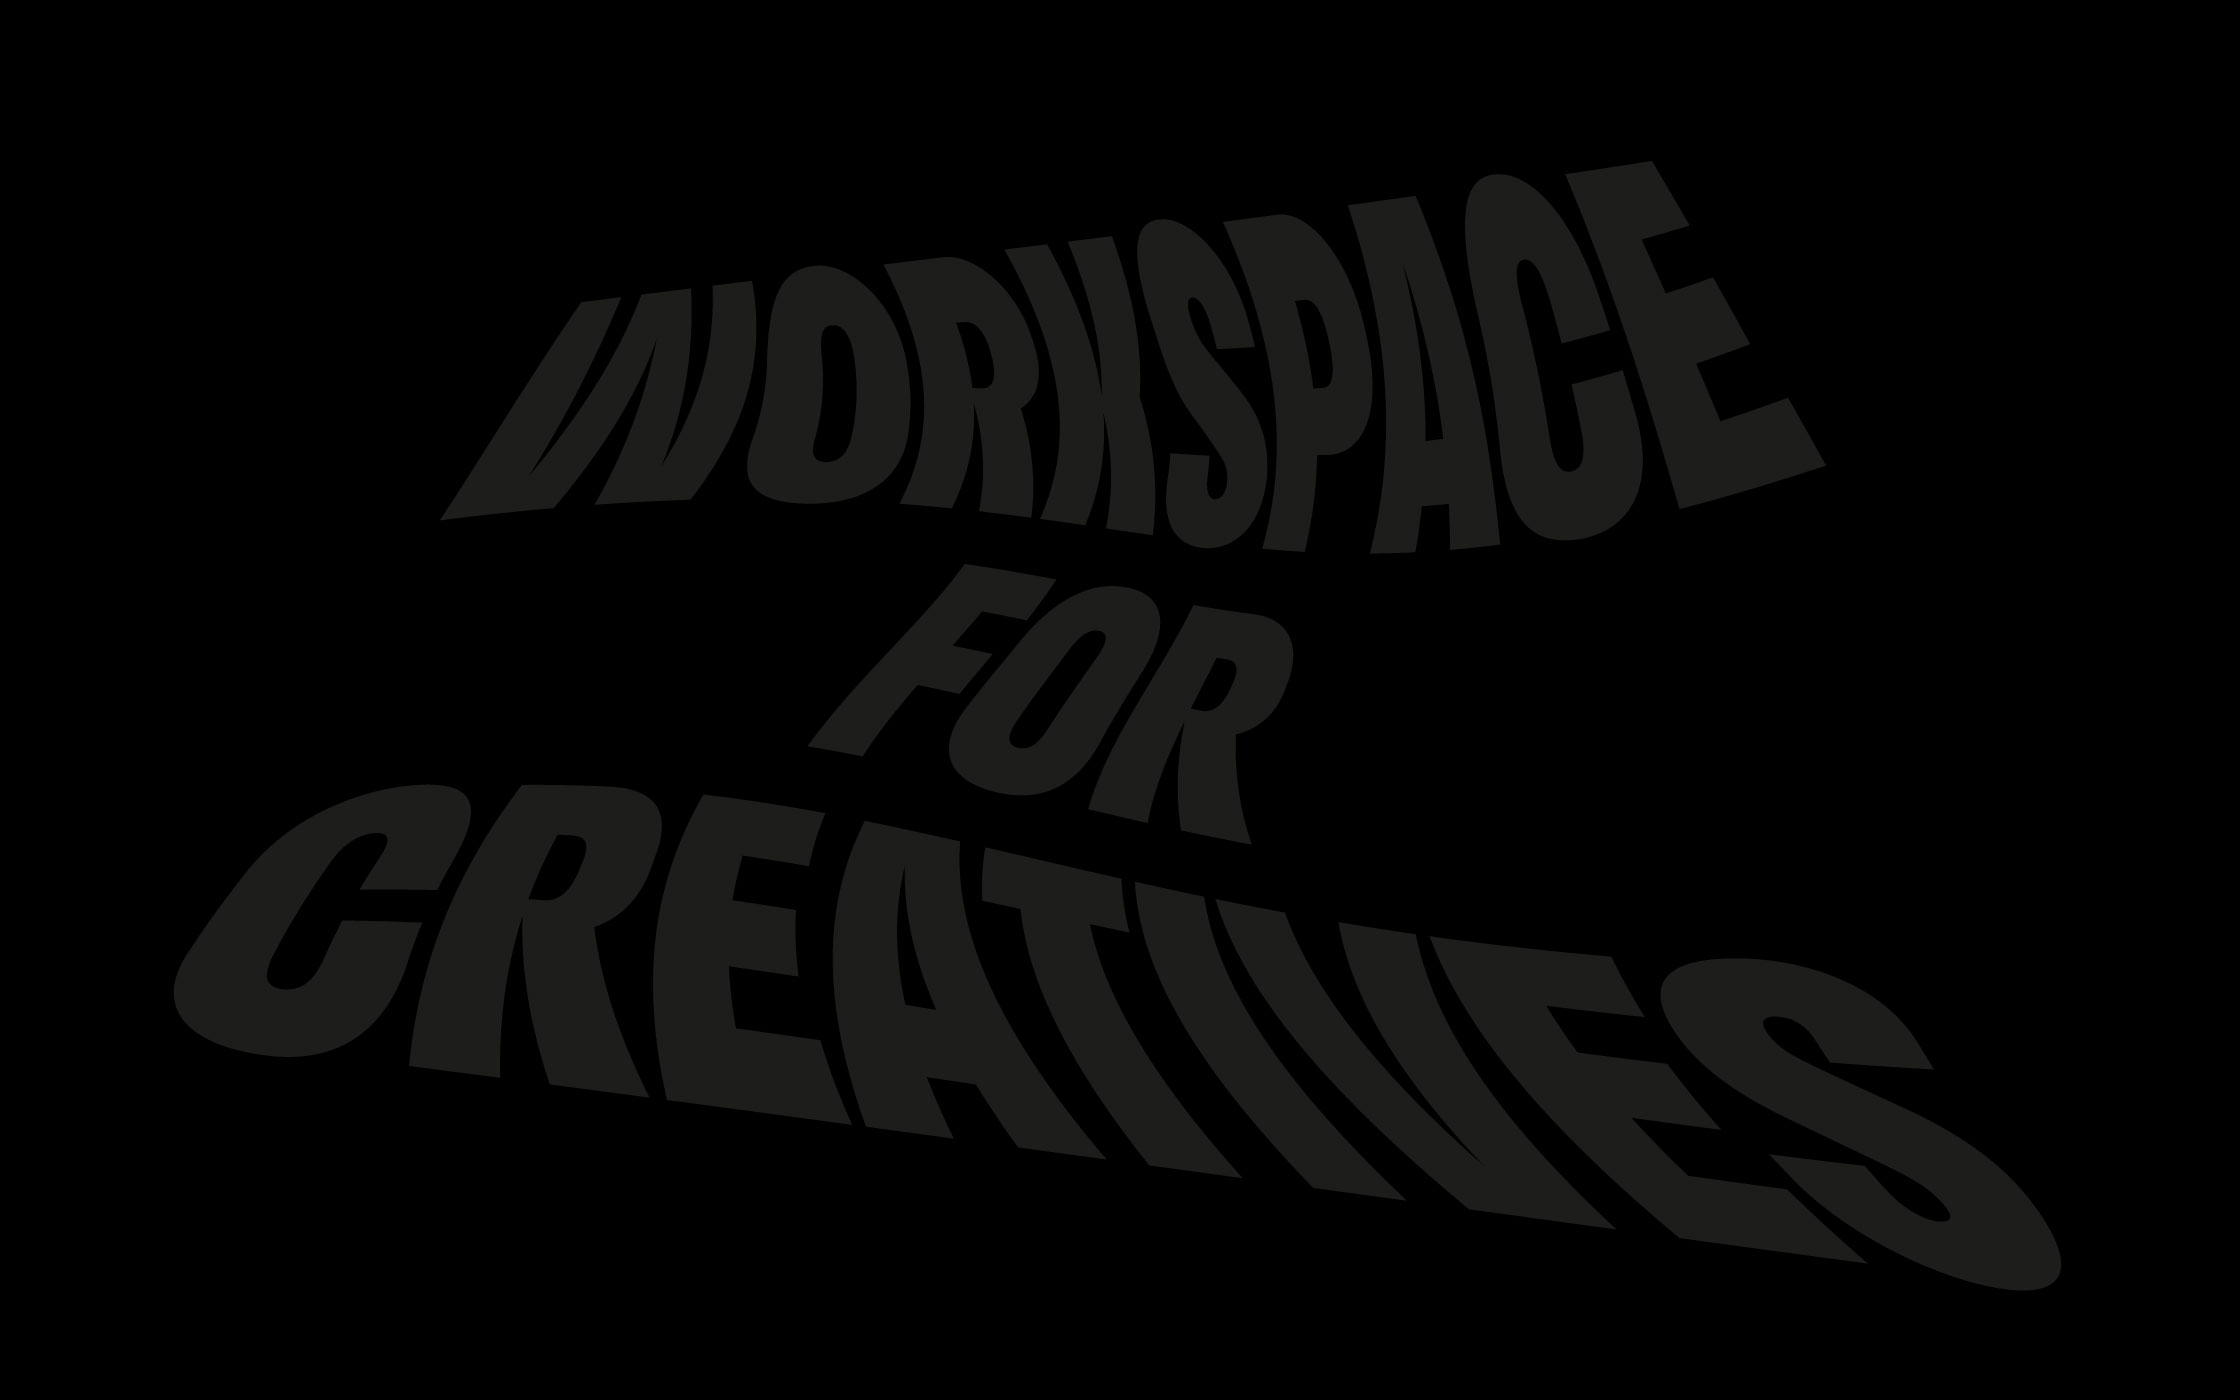 Free Workspace for Creatives